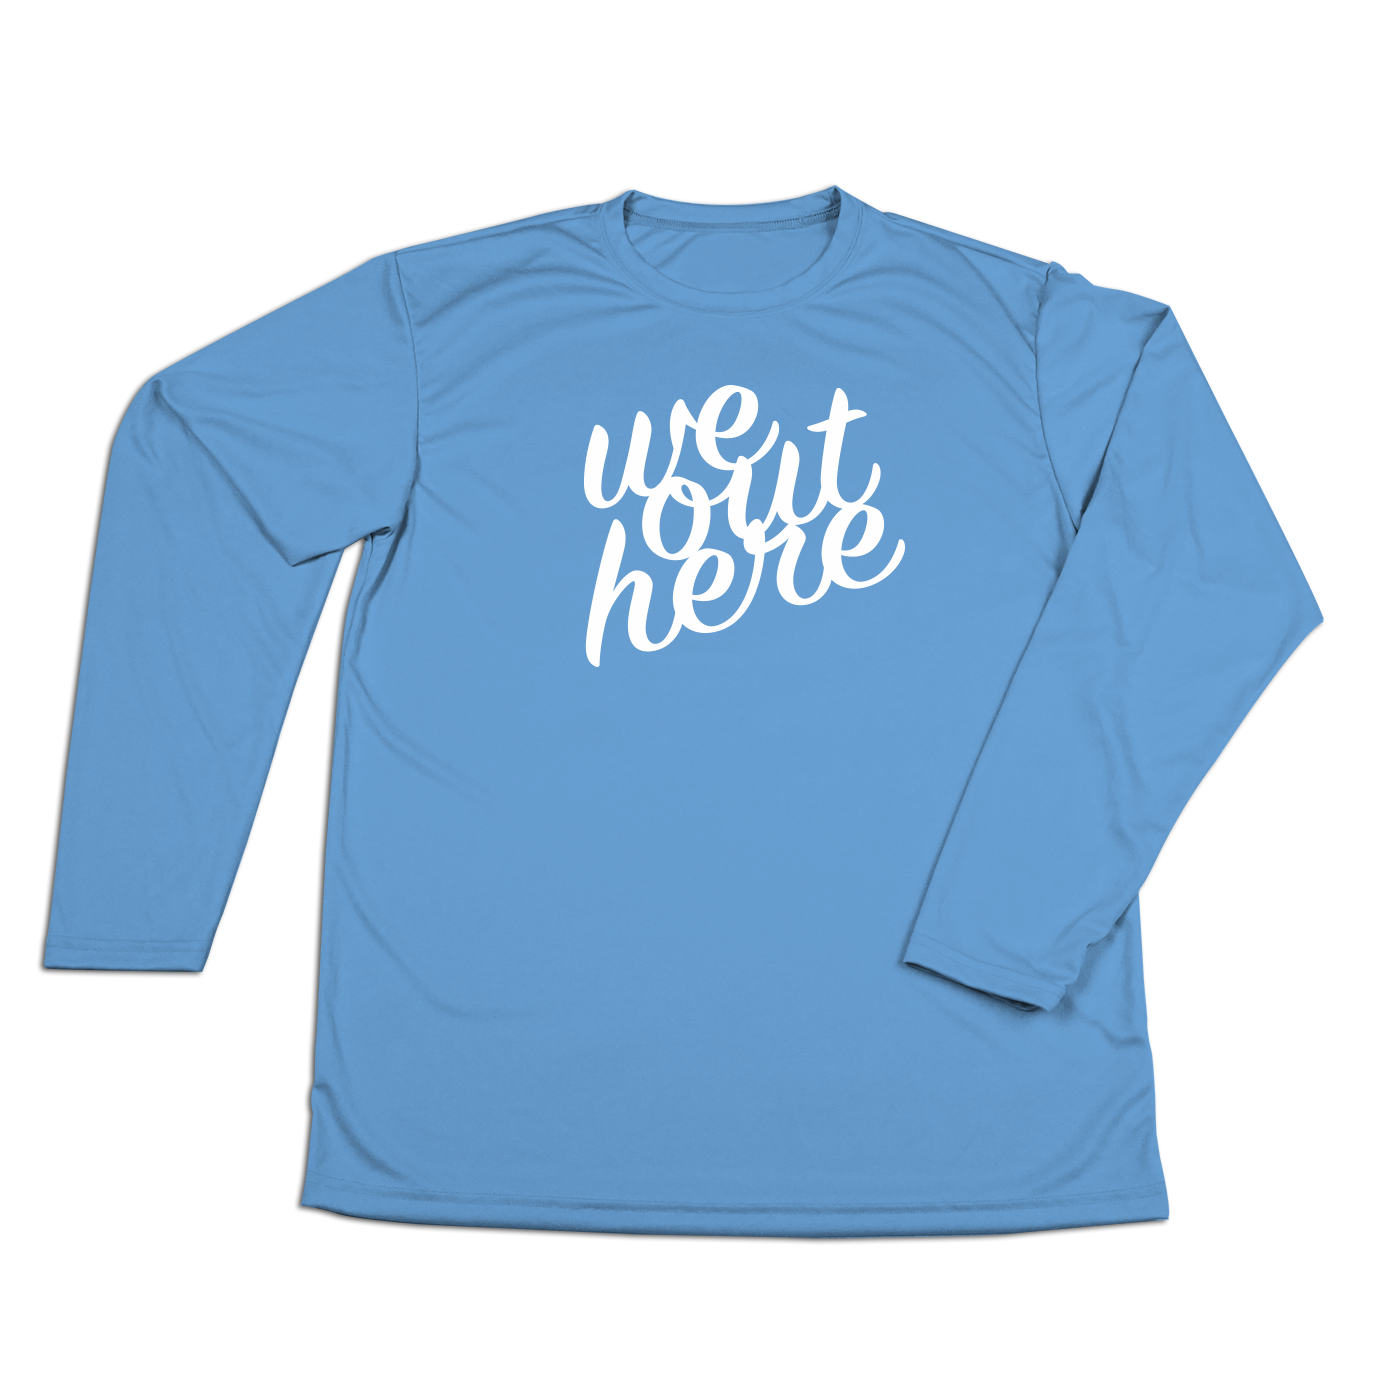 #WEOUTHERE Performance Long Sleeve Shirt - Hat Mount for GoPro